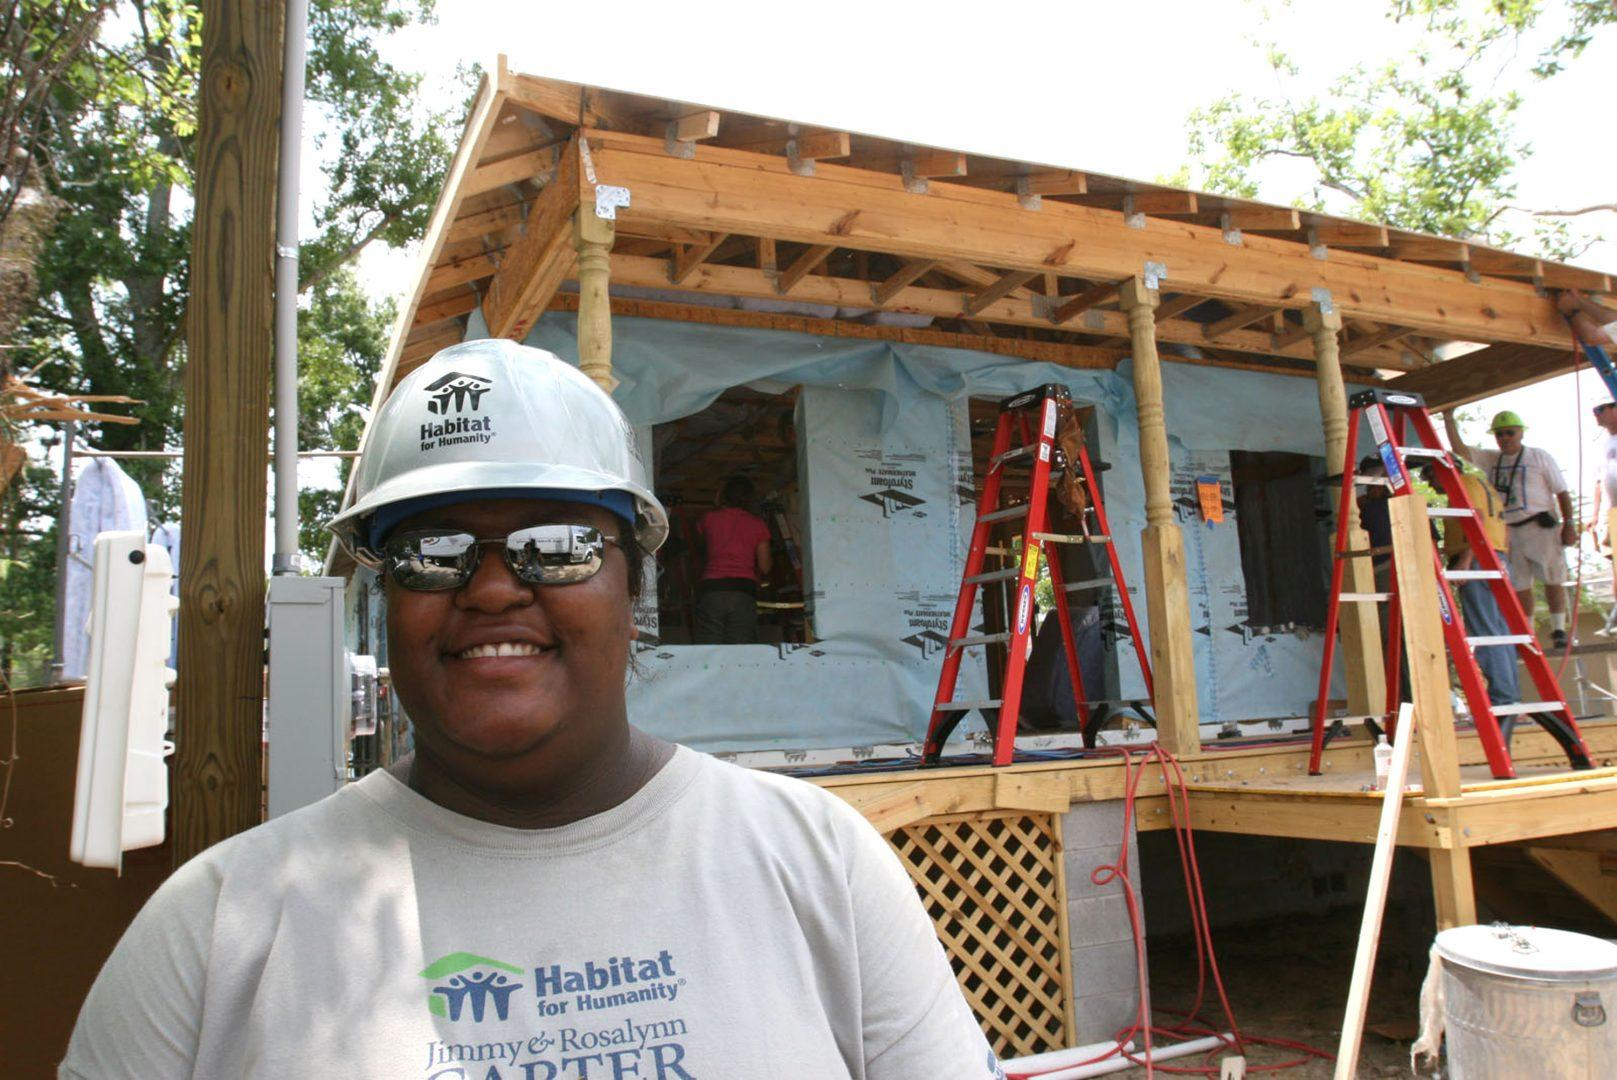 Angel Lewis stands in front of the new home being built by volunteers during Habitat for Humanity's Jimmy & Rosalynn Carter Work Project in the Forest Heights subdivision in Gulfport, Mississippi, Tuesday, May 13, 2008. (James Edward Bates/Biloxi Sun-Herald/MCT)